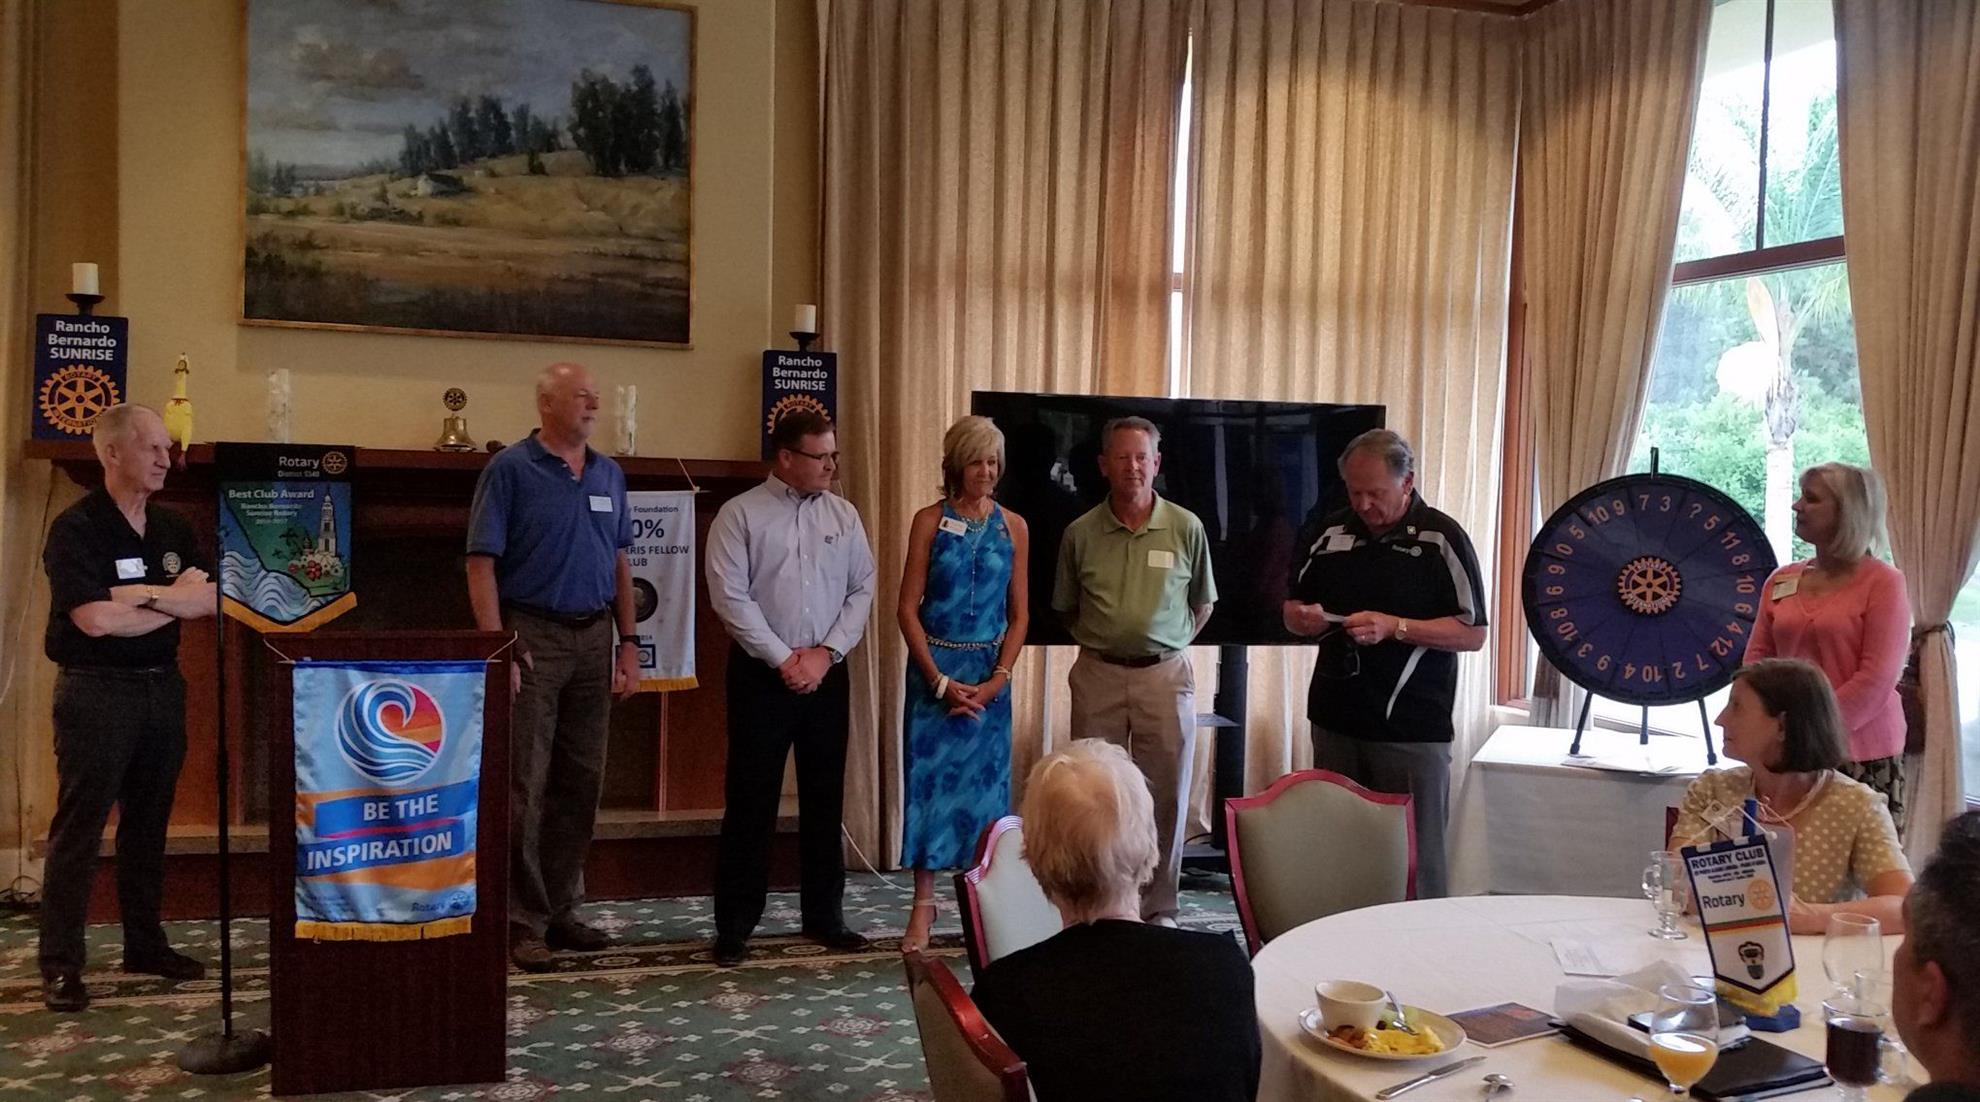 Stories Rotary Club Of Rancho Bernardo Sunrise San Diego Electric Fan Conversion For Suburban Meet The Two Newest Members Sandi Menderson Bella Reflections And Brian Gansert Ace Parking